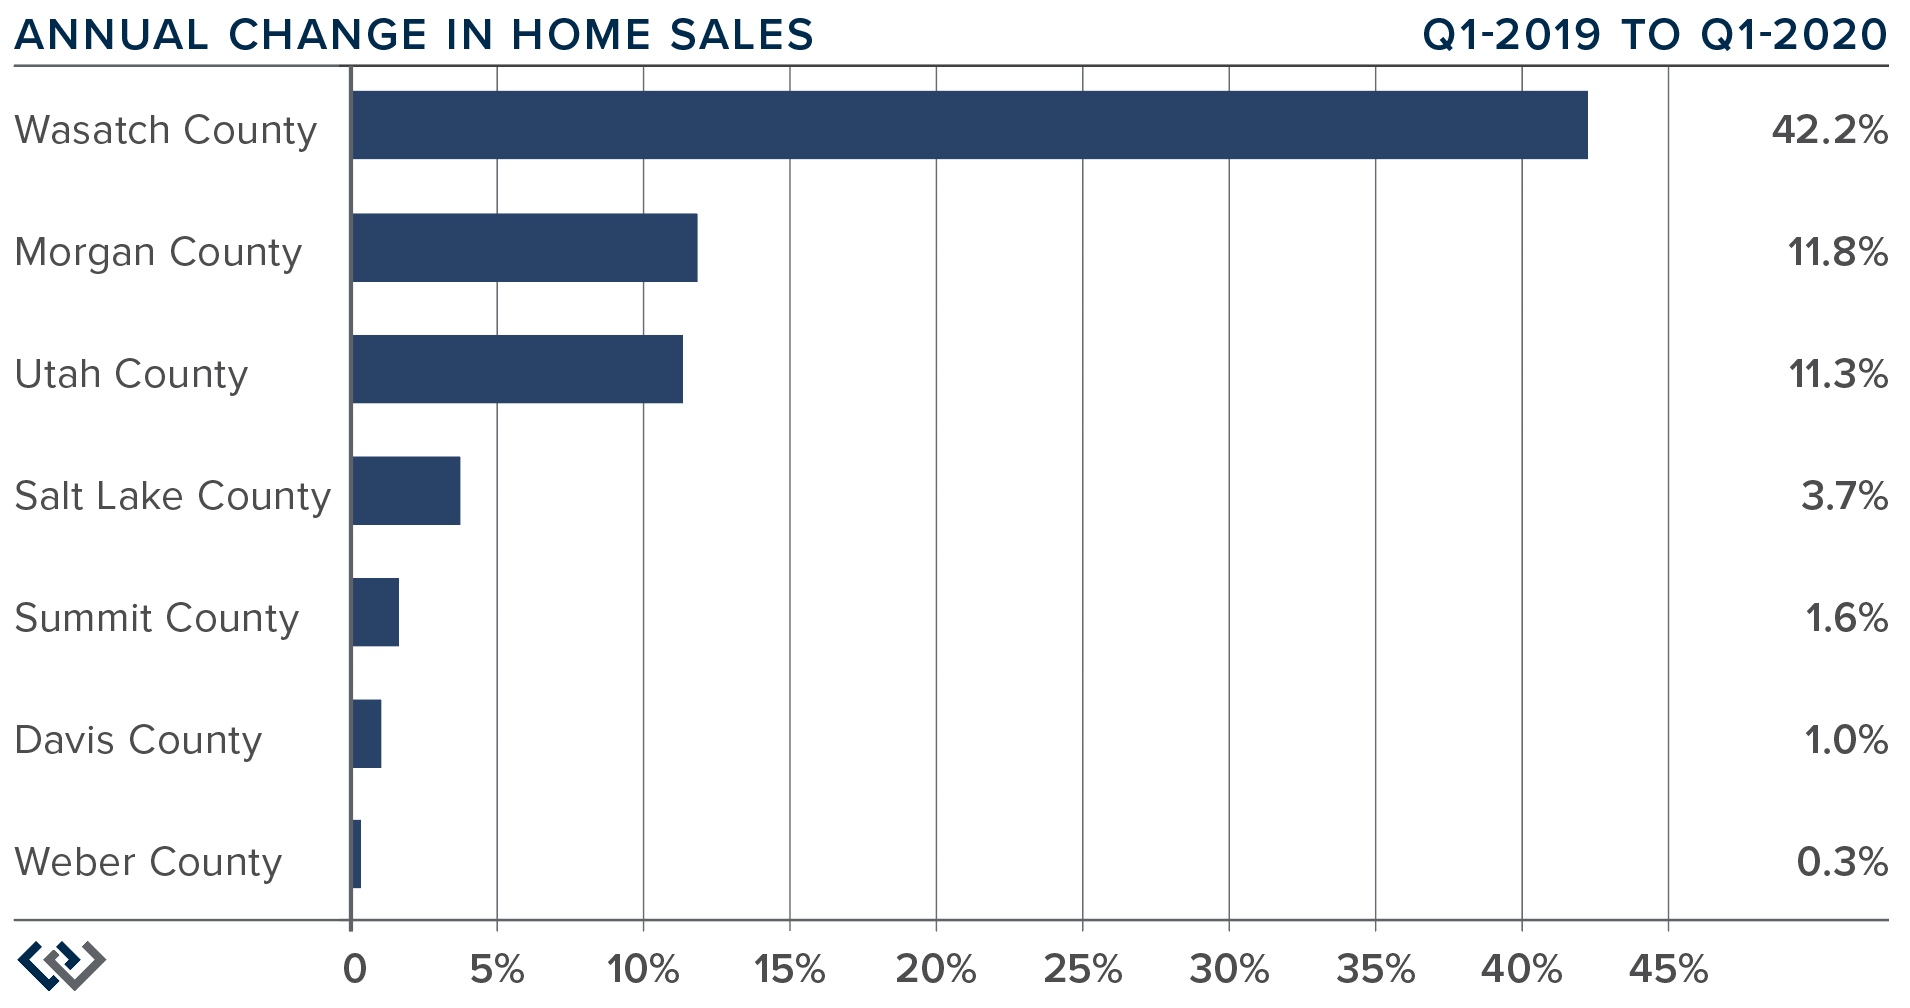 Windermere-Gardner-Report-Utah-Market-Trends-Annual-Change-Home-Sales-Quarter-1-2020